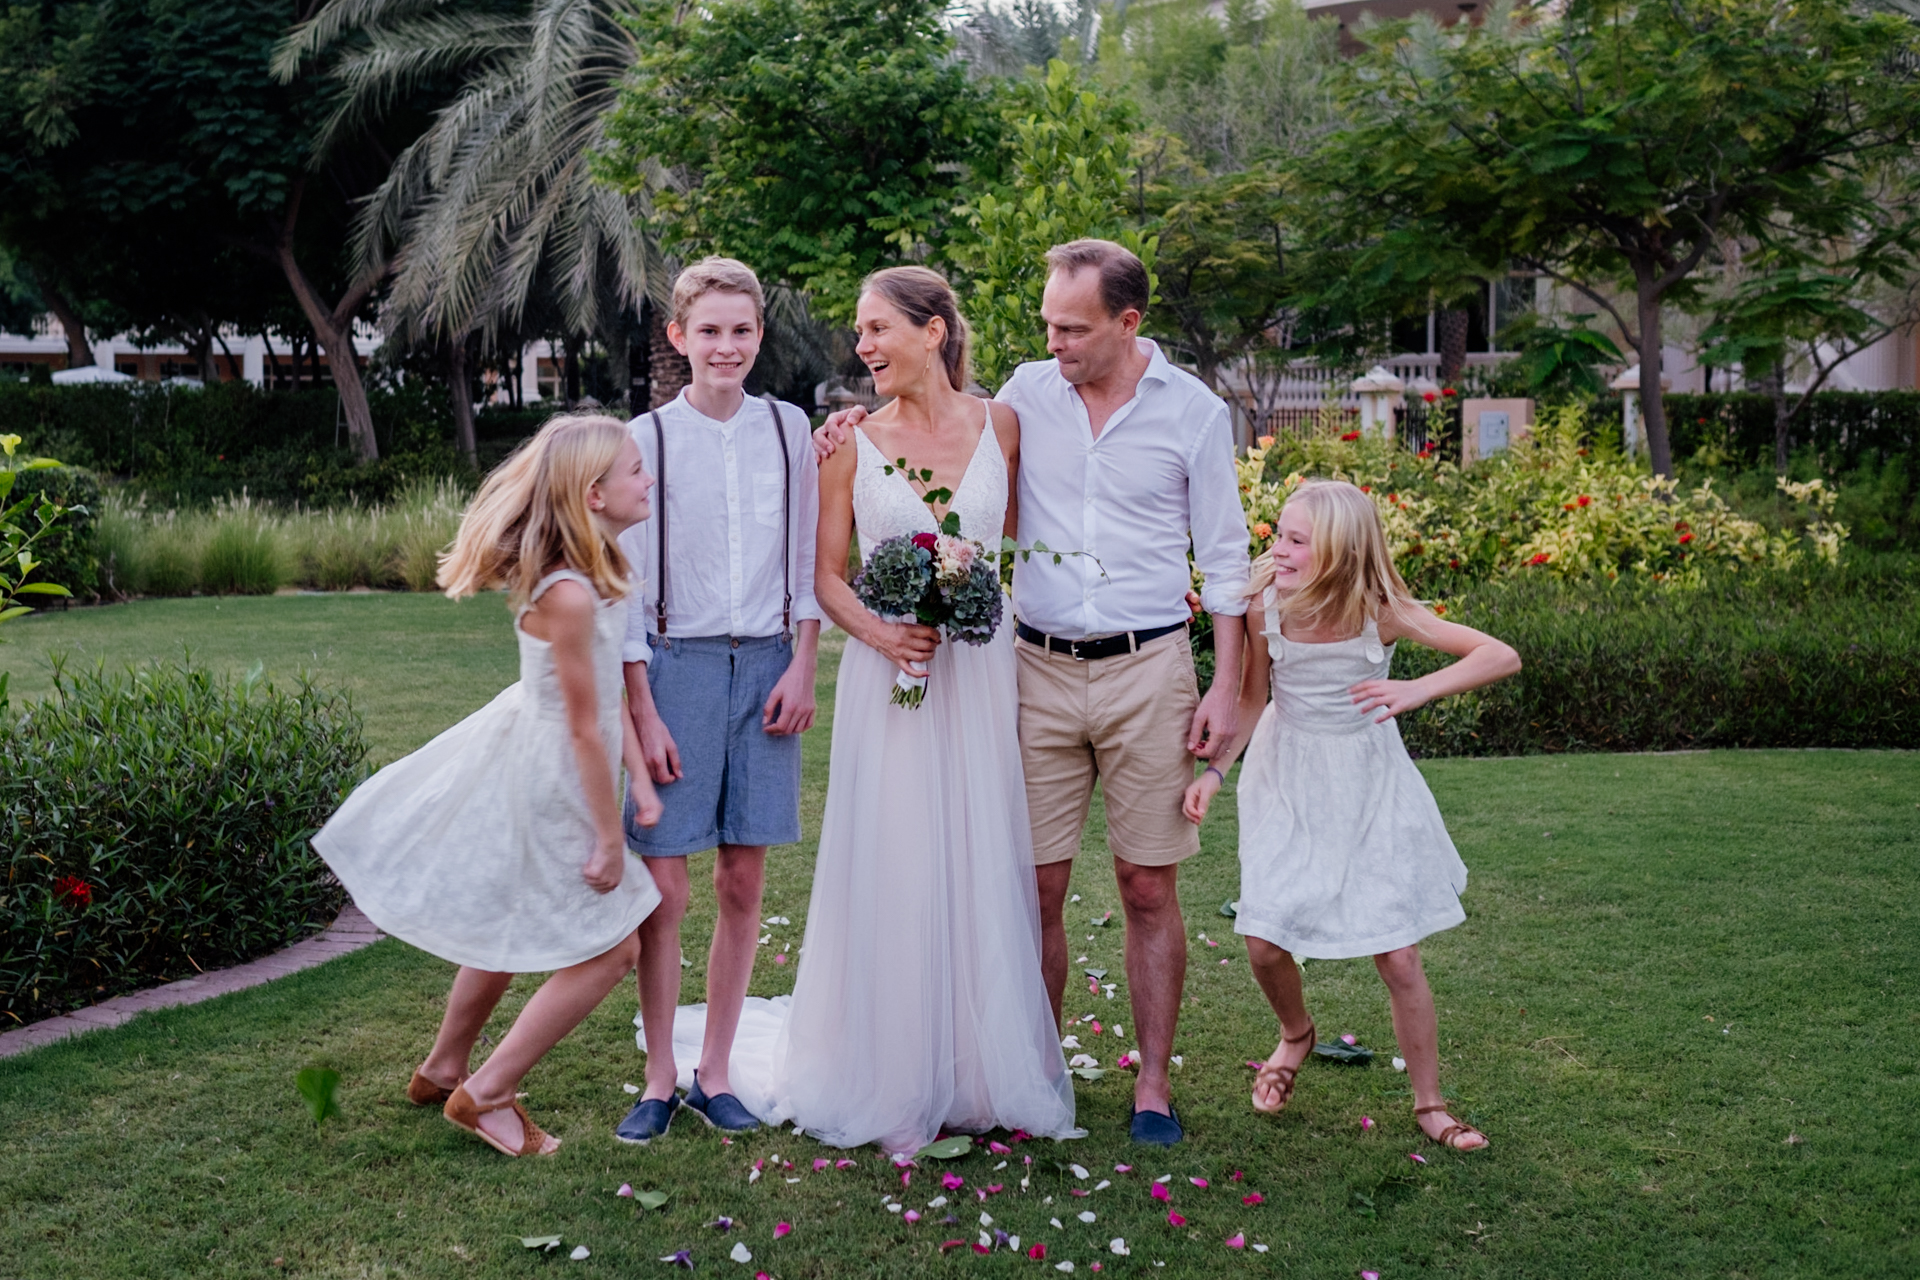 UAE Outdoor Elopement Ceremony Portrait | with kids around, all they need is encouragement